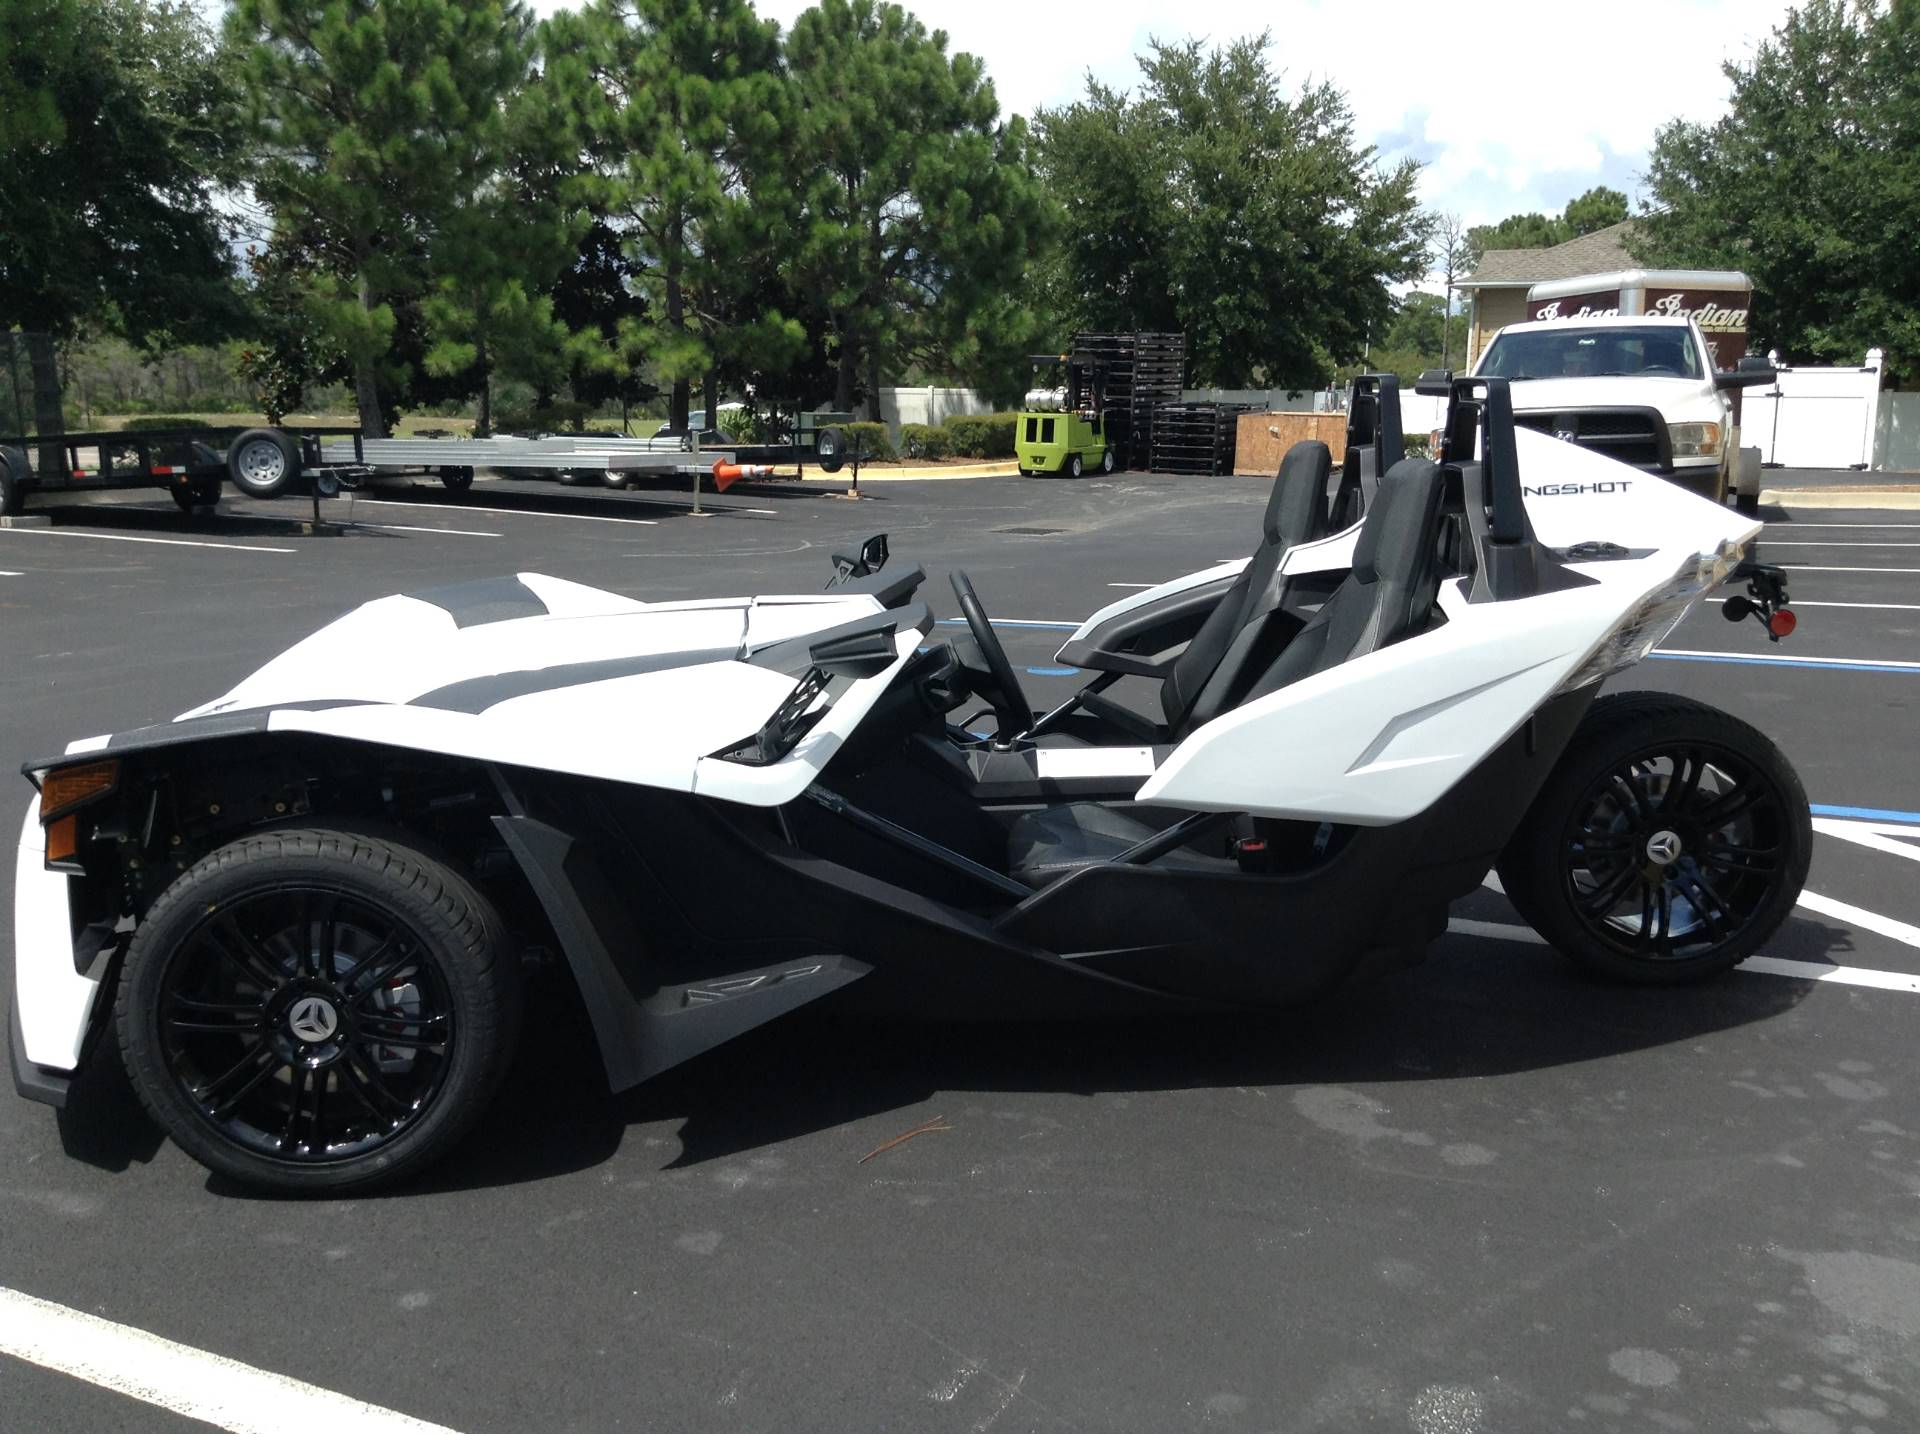 2019 Polaris Slingshot base in Panama City Beach, Florida - Photo 7